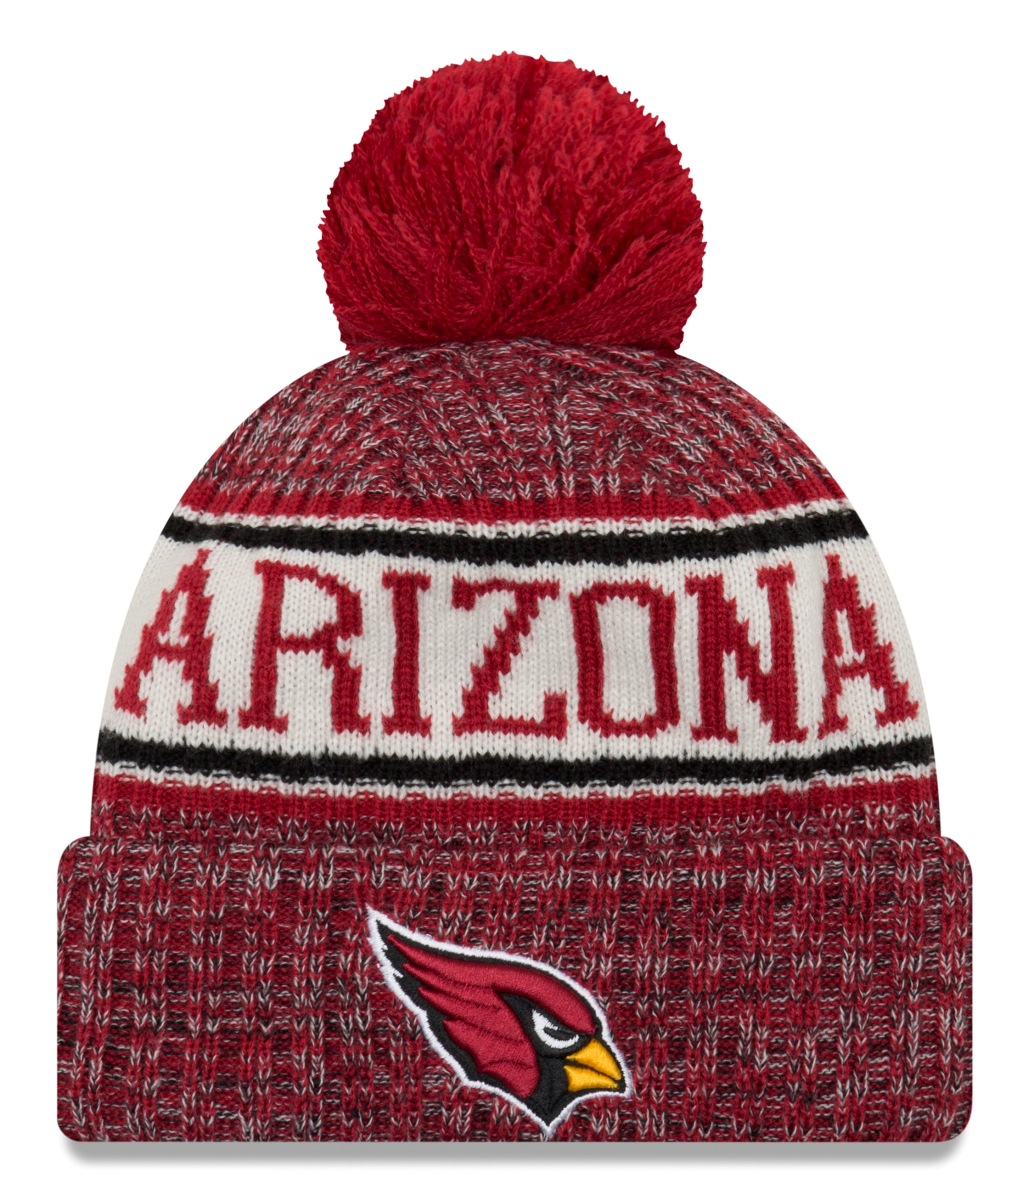 Arizona Cardinals New Era 2018 NFL Sideline On Field Sport Knit Hat - Red